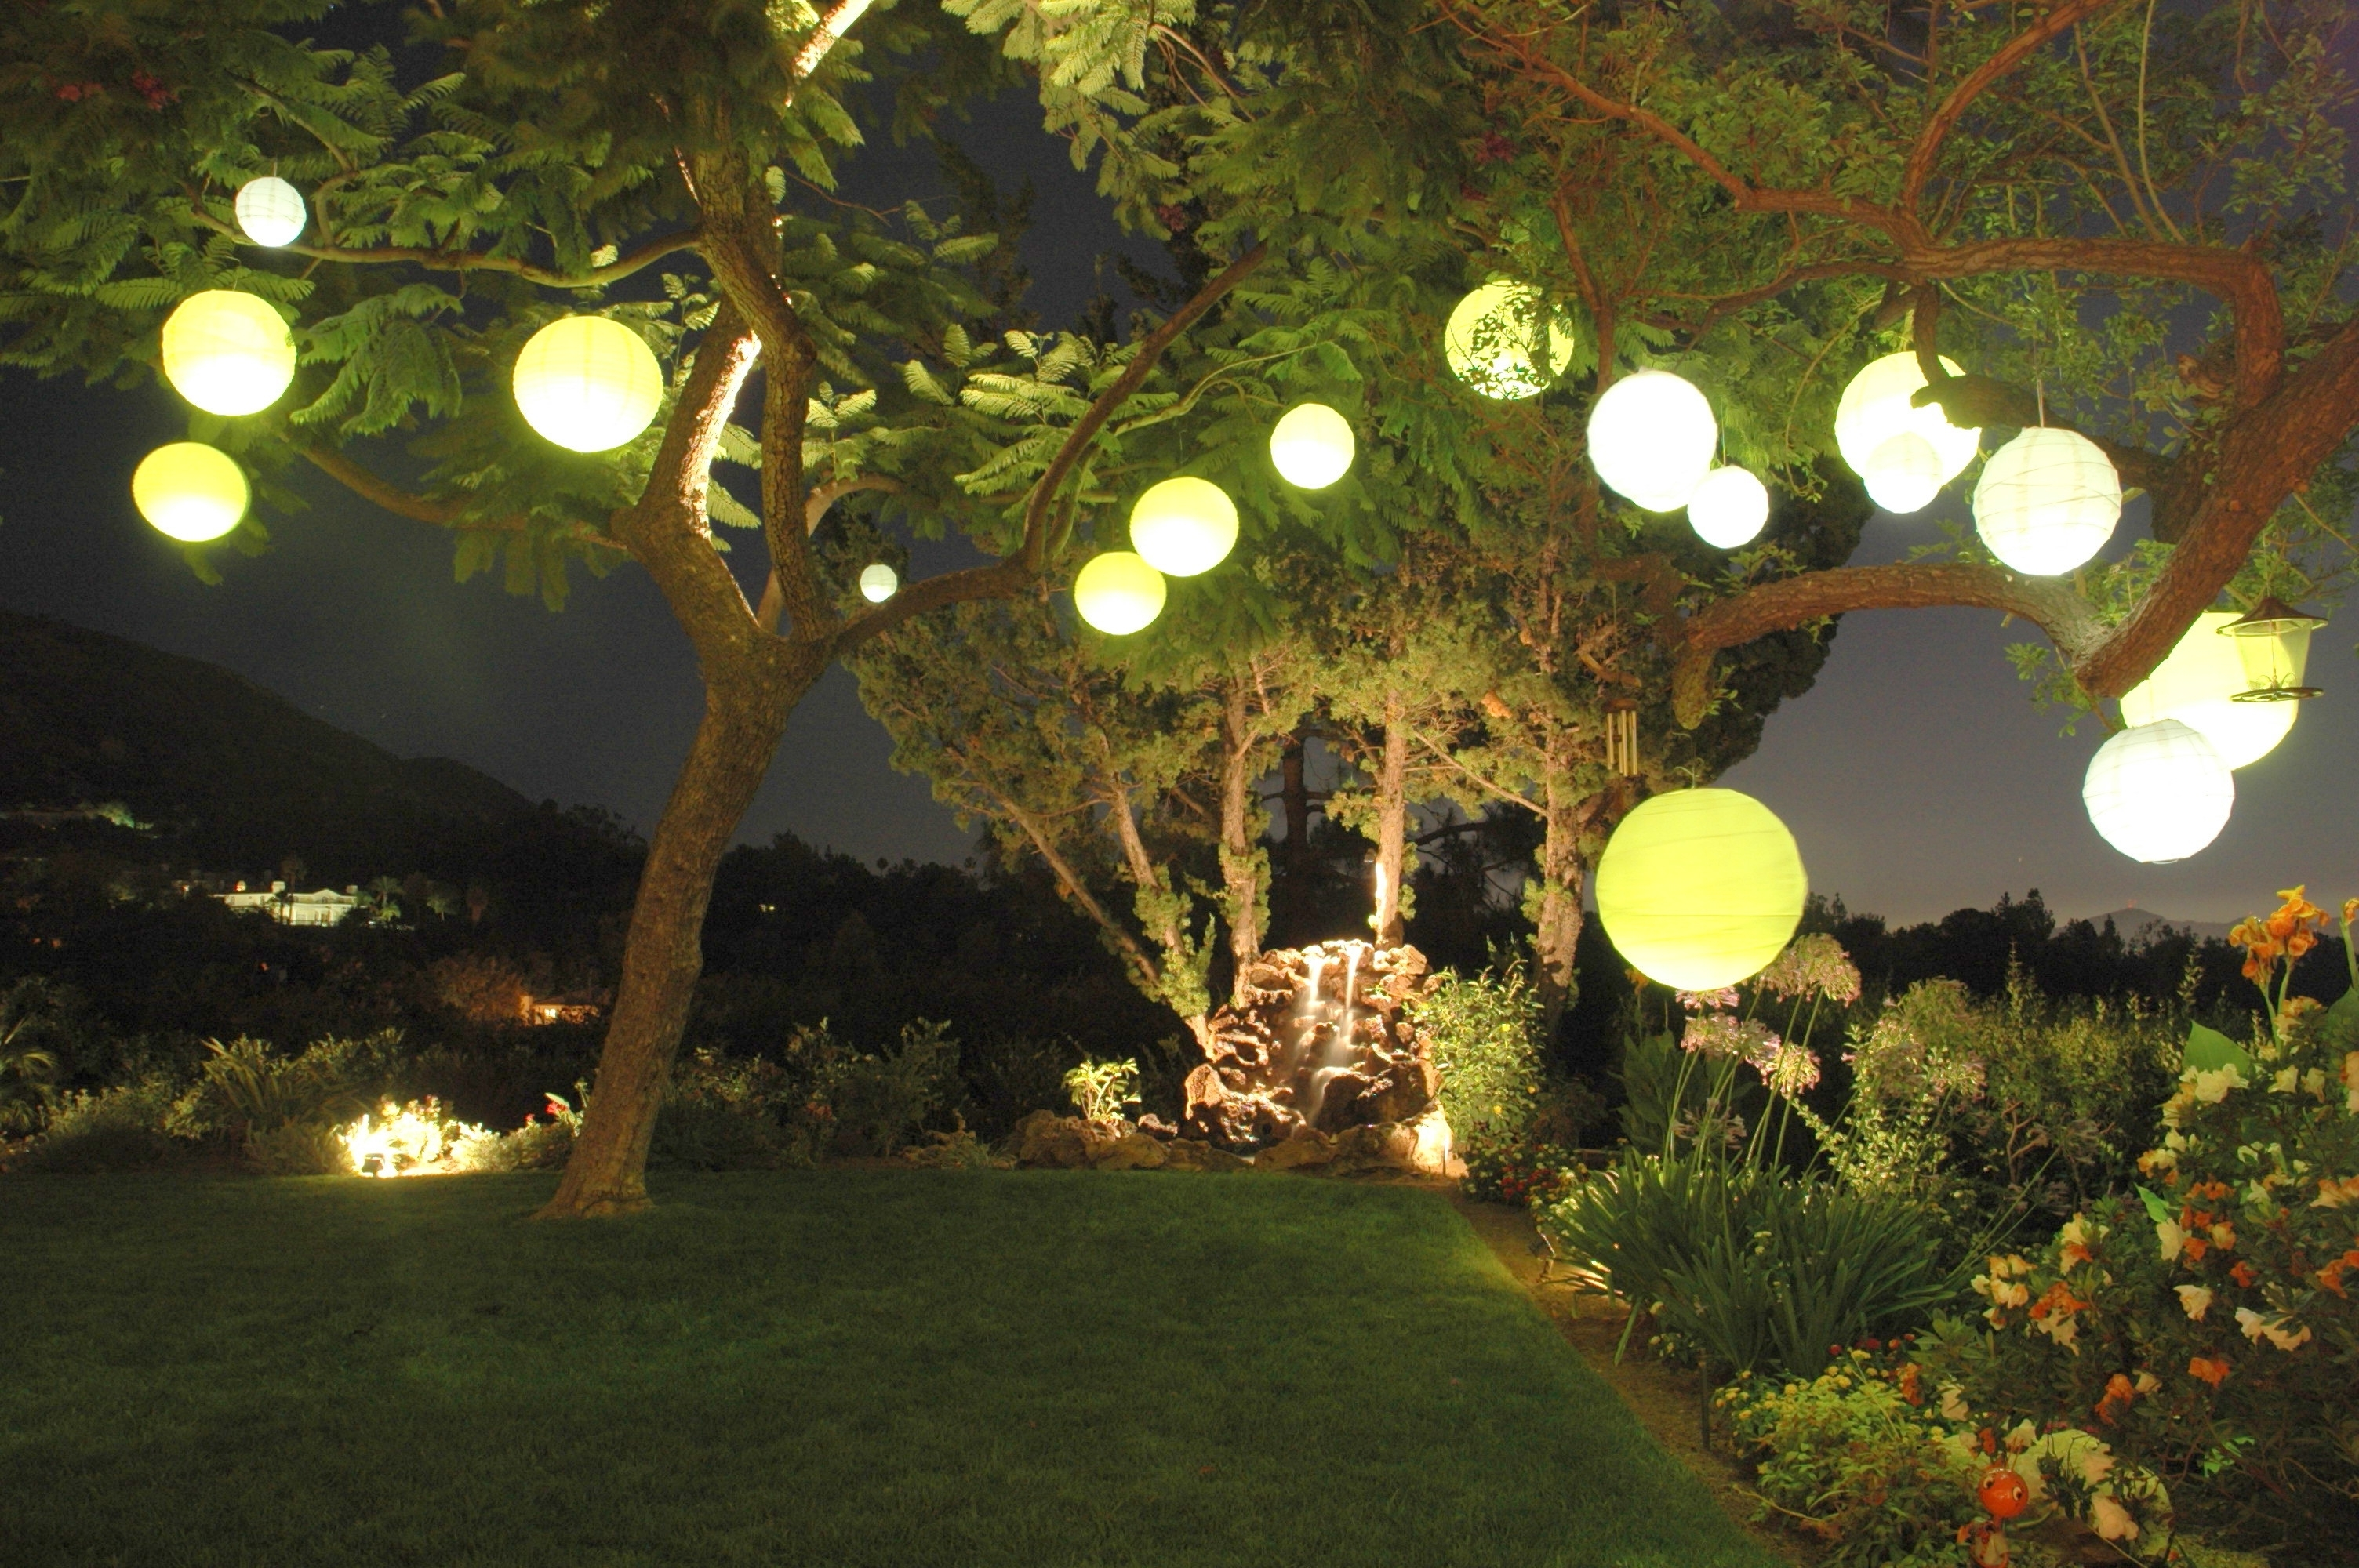 Popular Decorating: Garden Party With Paper Lantern Light Intended For Outdoor Lighting Japanese Lanterns (Gallery 20 of 20)